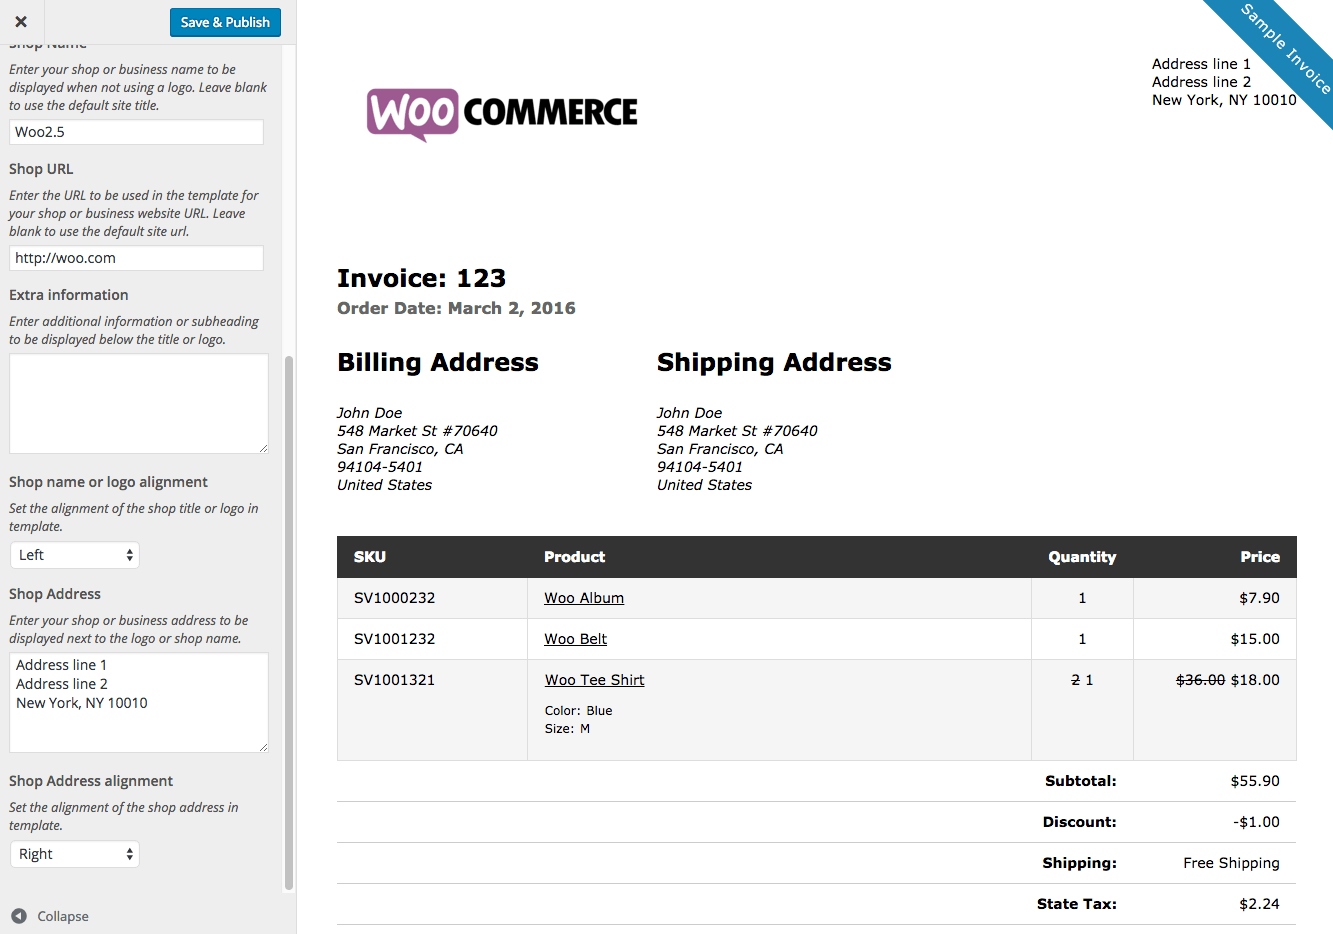 Ultrablogus  Mesmerizing Print Invoices Amp Packing Lists  Woocommerce With Entrancing Woocommerce Print Invoices  Packing Lists Customizer With Astonishing Invoice Quickbooks Also Invoice Numbering In Addition Invoice To And Automobile Invoice Prices As Well As Best Invoice App For Ipad Additionally Create Invoice In Excel From Woocommercecom With Ultrablogus  Entrancing Print Invoices Amp Packing Lists  Woocommerce With Astonishing Woocommerce Print Invoices  Packing Lists Customizer And Mesmerizing Invoice Quickbooks Also Invoice Numbering In Addition Invoice To From Woocommercecom